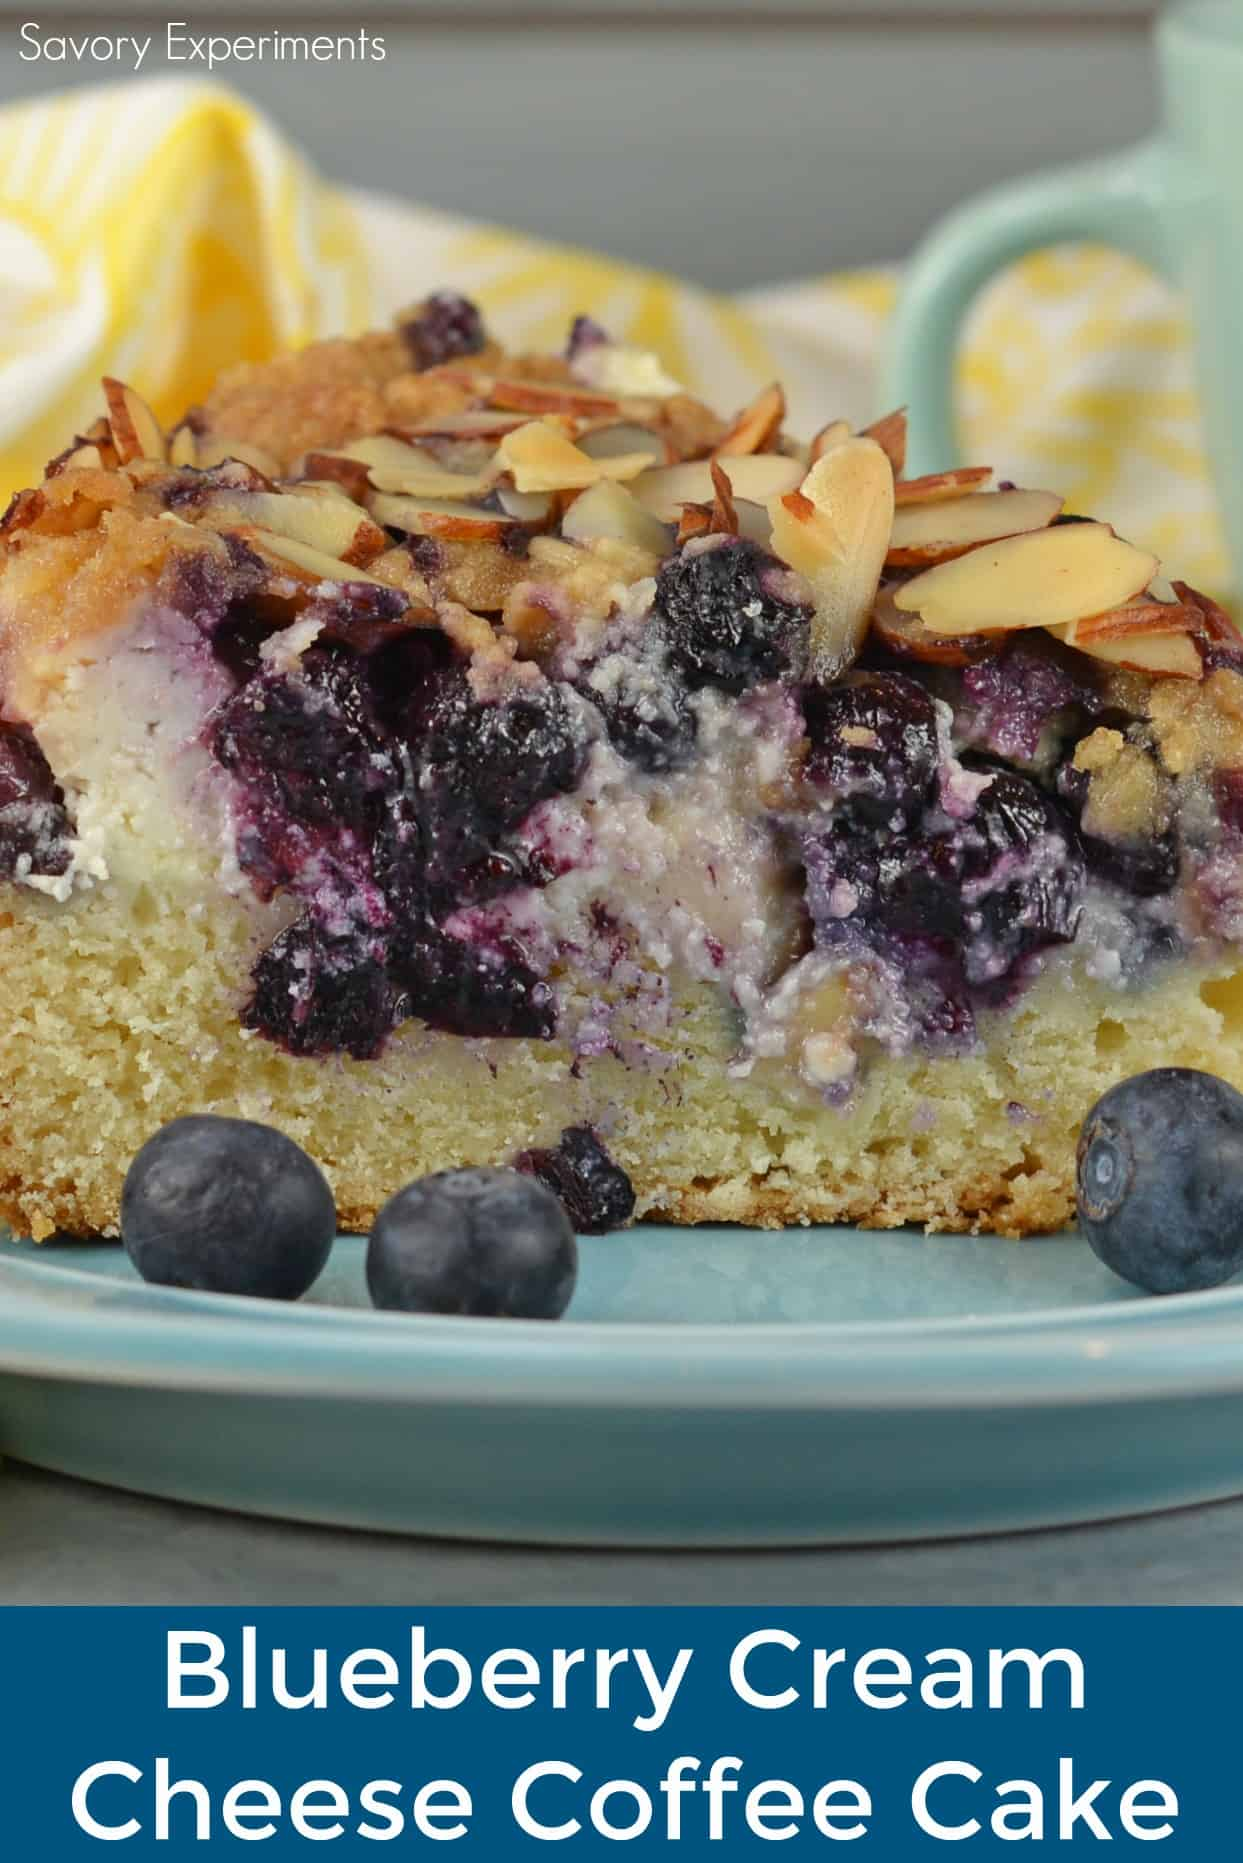 Blueberry Cream Cheese Coffee Cake is an easy coffee cake recipe with three layers of tender cake, silky cream cheese and almond streusel topping.